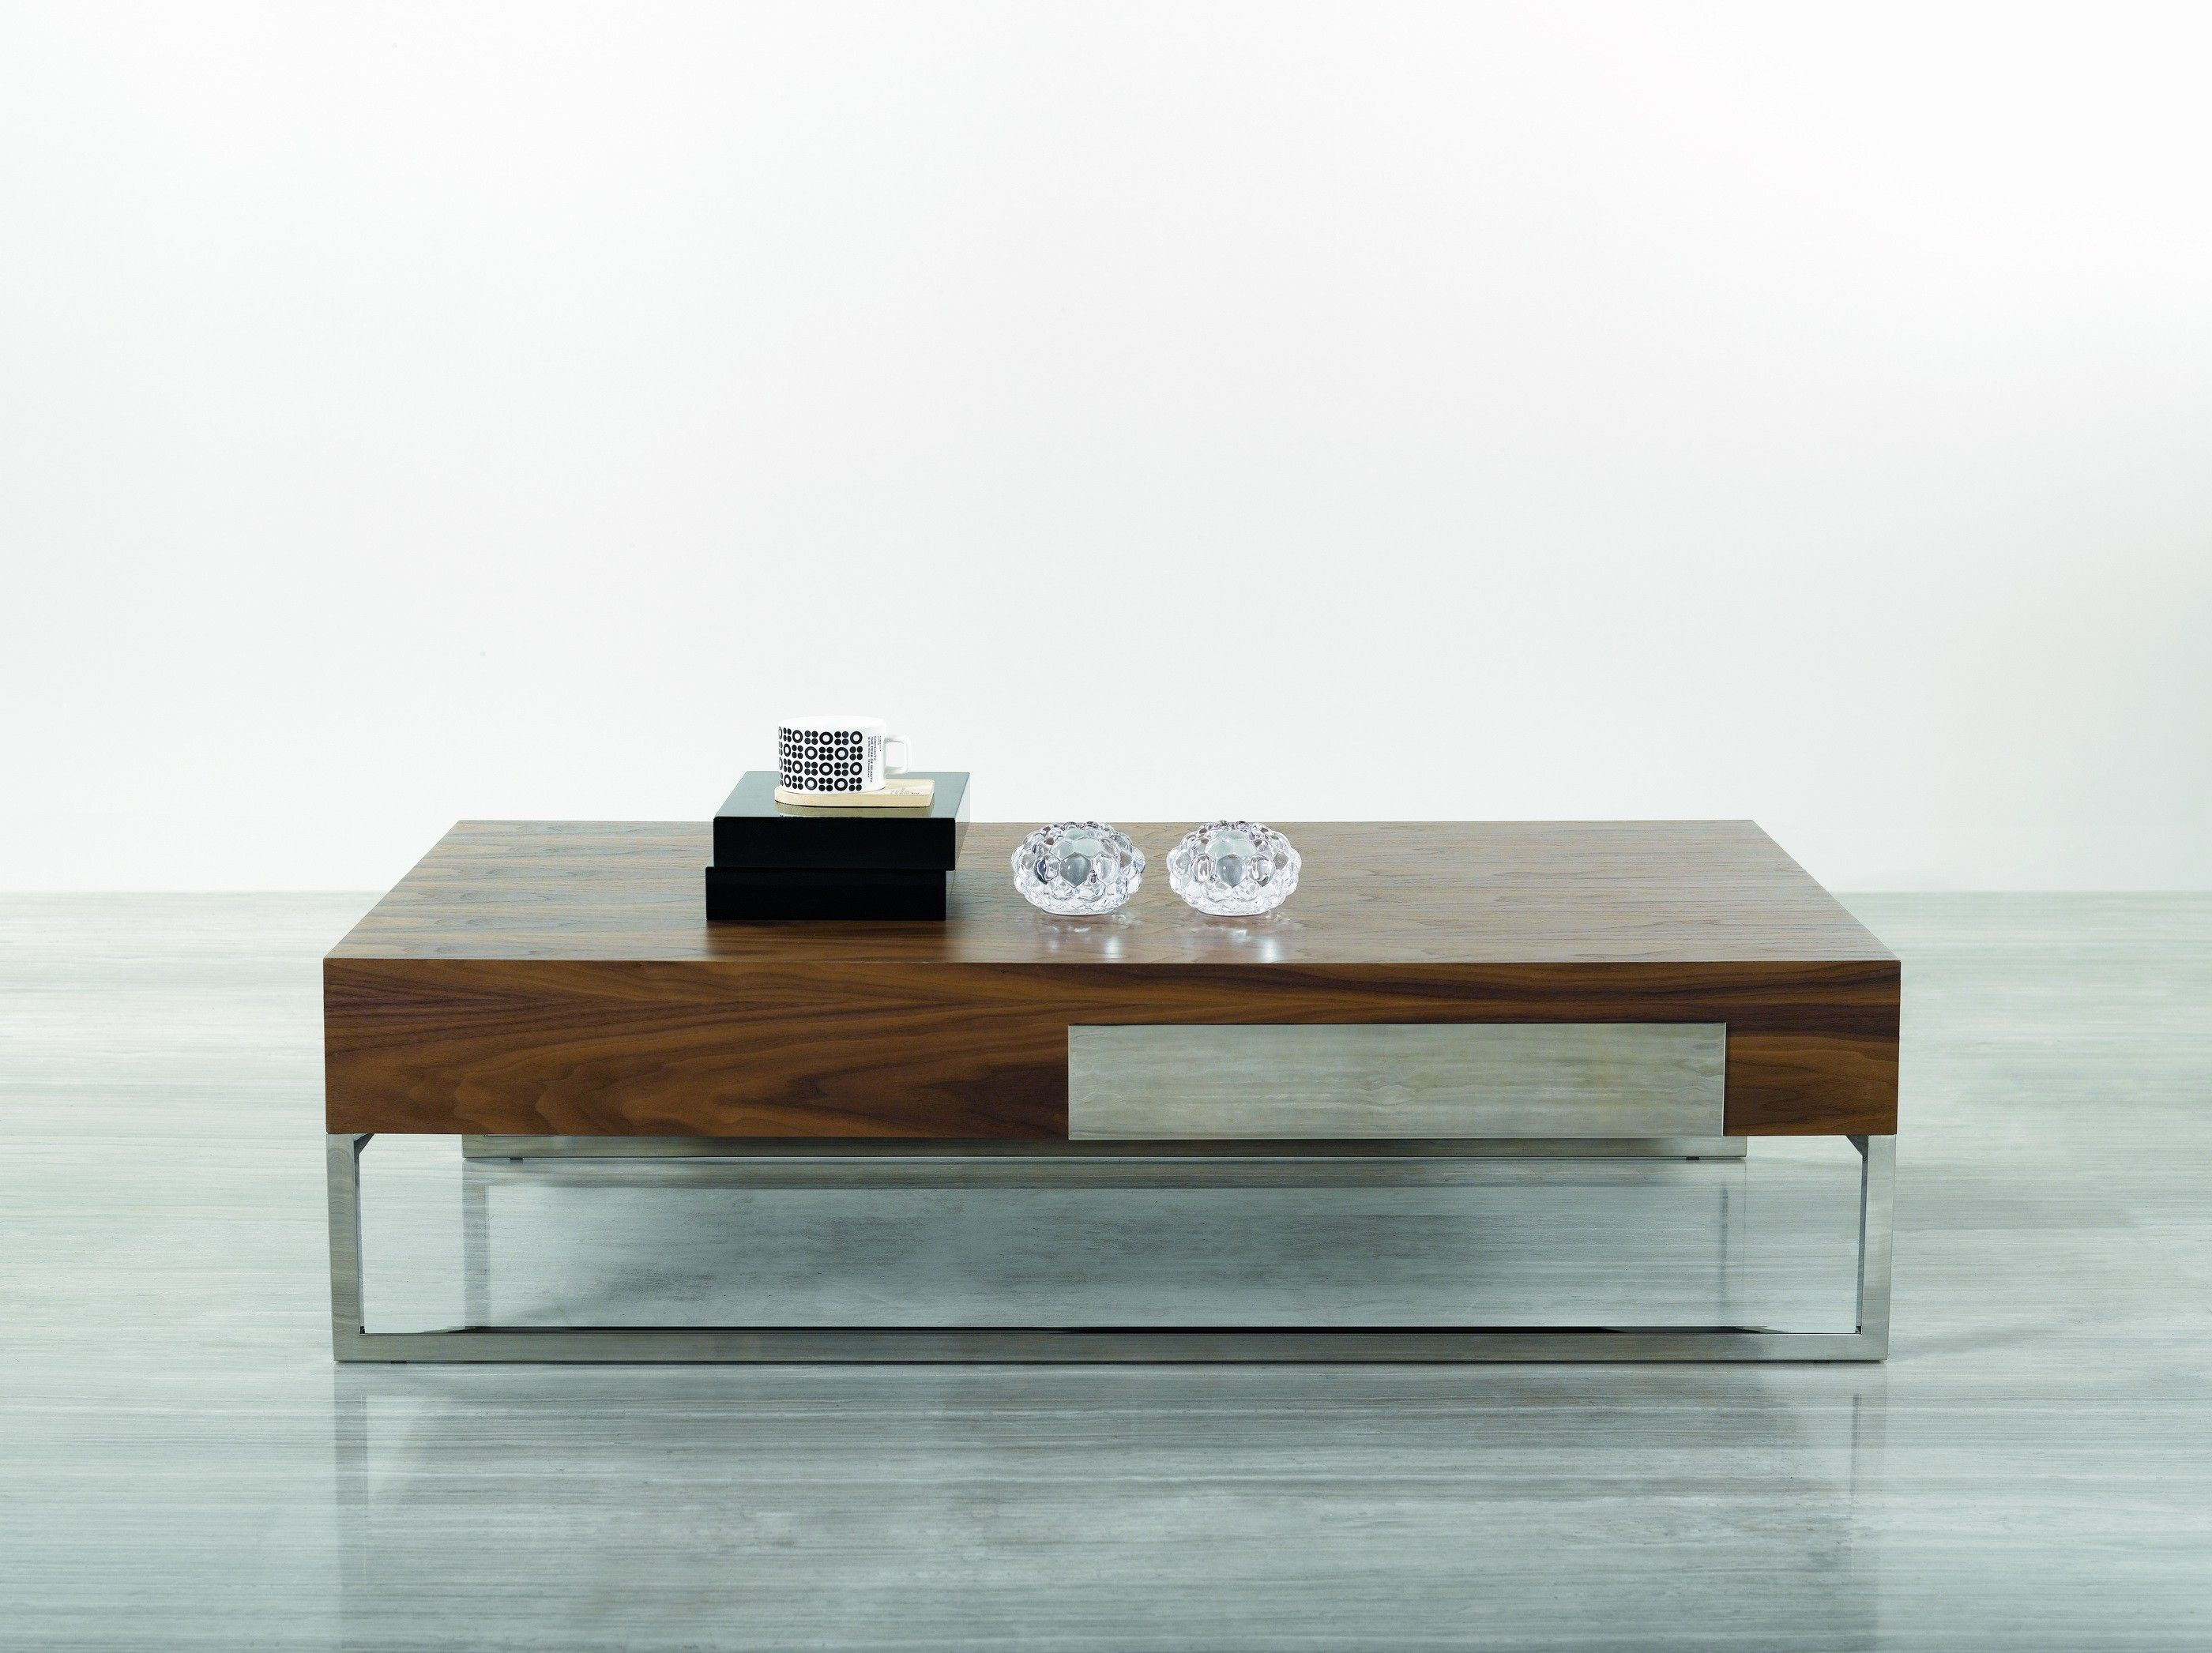 Fantastic short wood veneer coffee table design